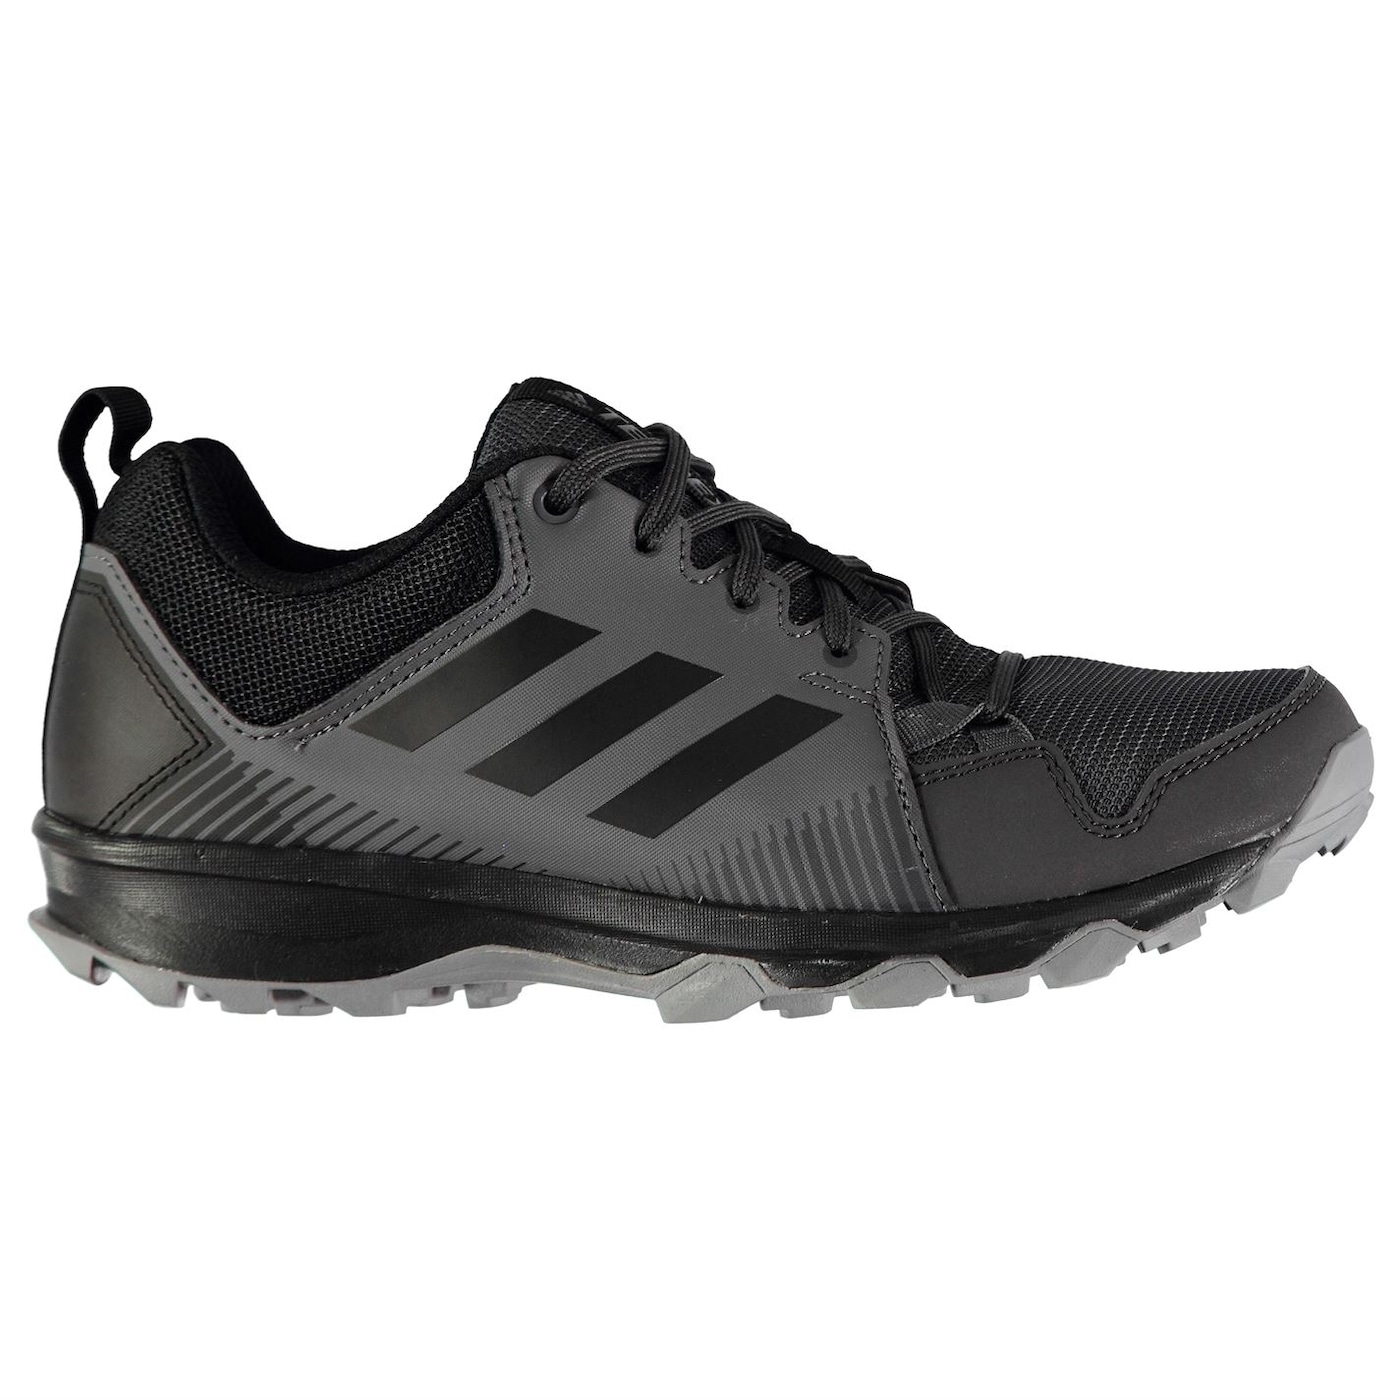 Adidas Trace Rocker Ladies Trail Running Shoes